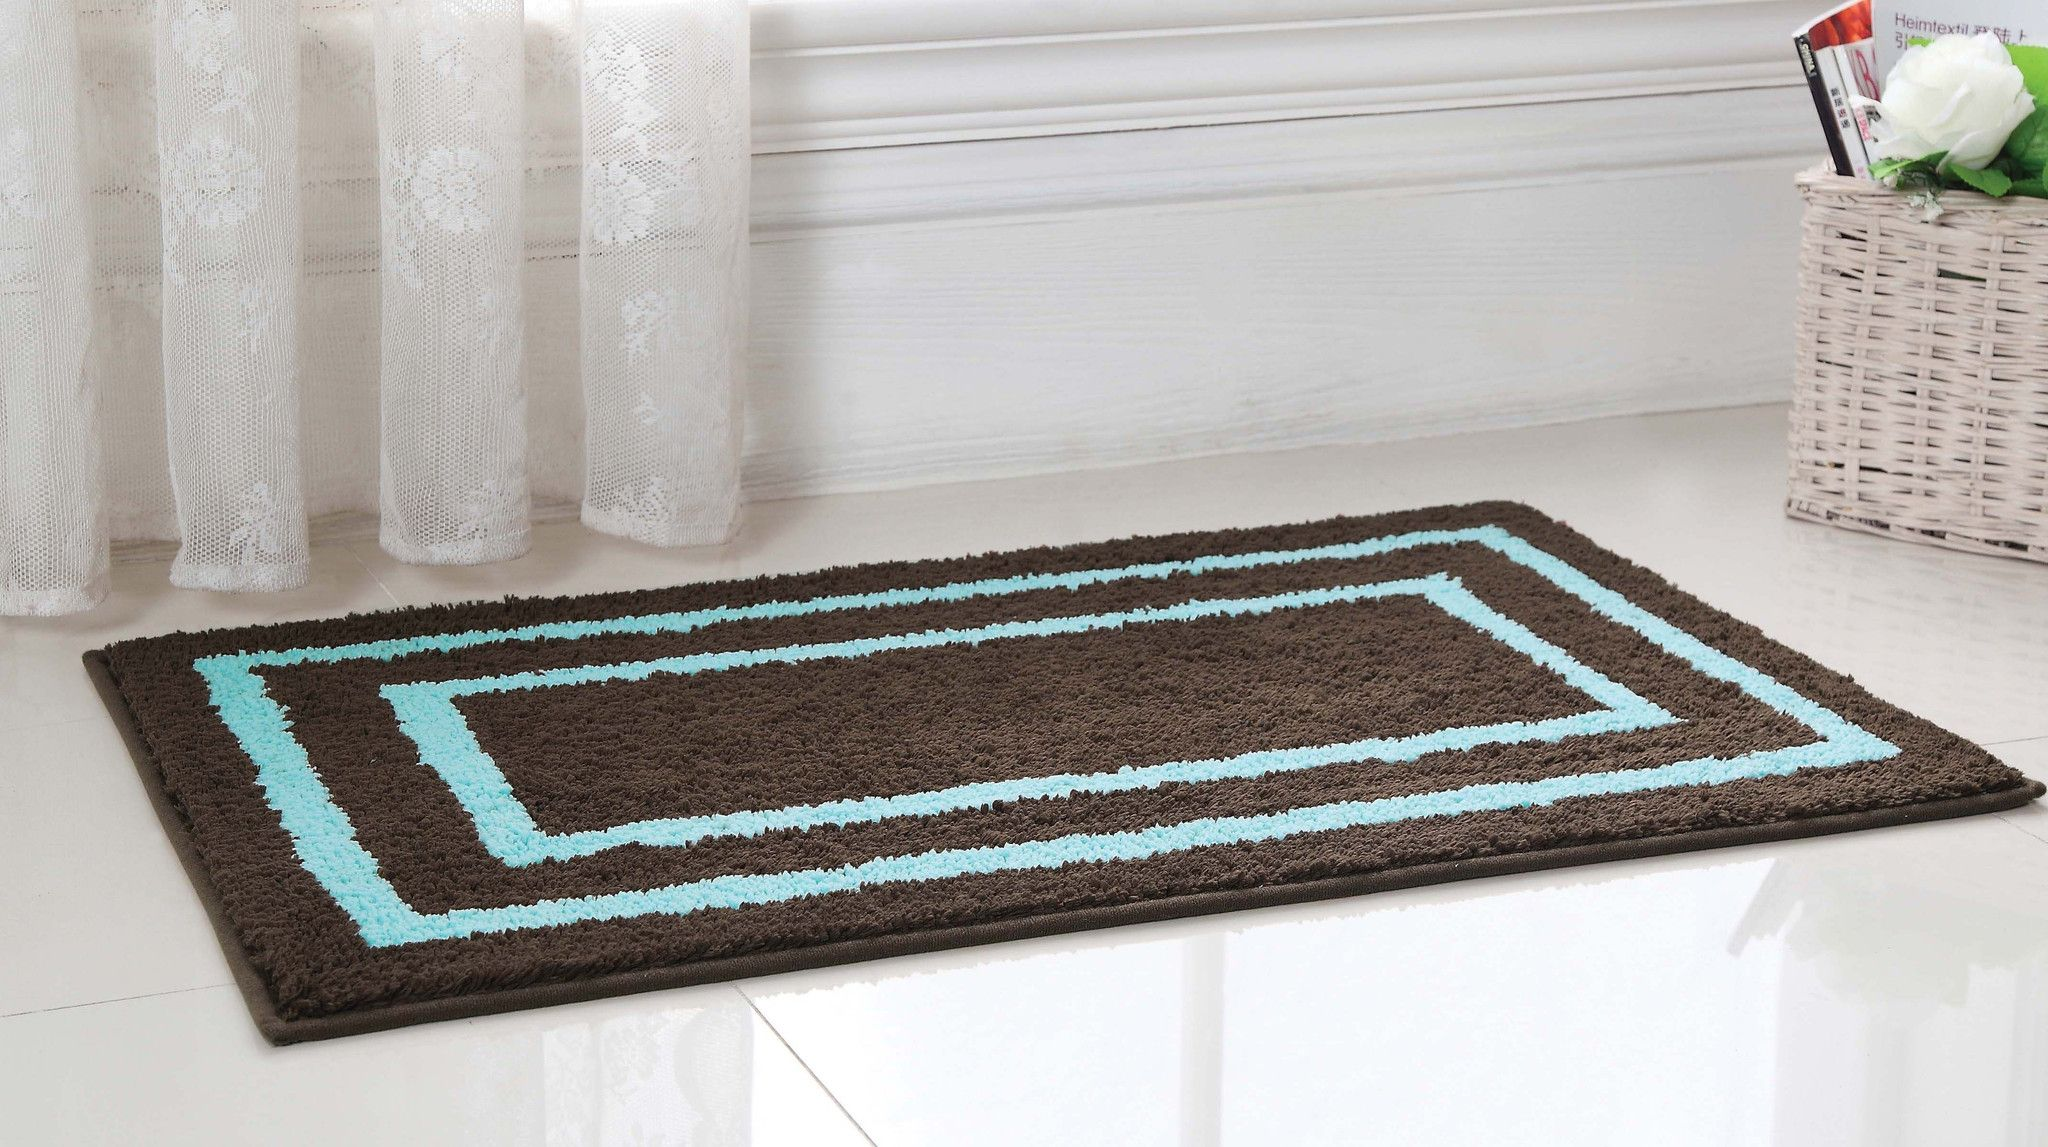 13 Remarkable Home Goods Bath Rugs Design Bathroom Rug Sets Blue Bathroom Rugs Blue Bath Rug